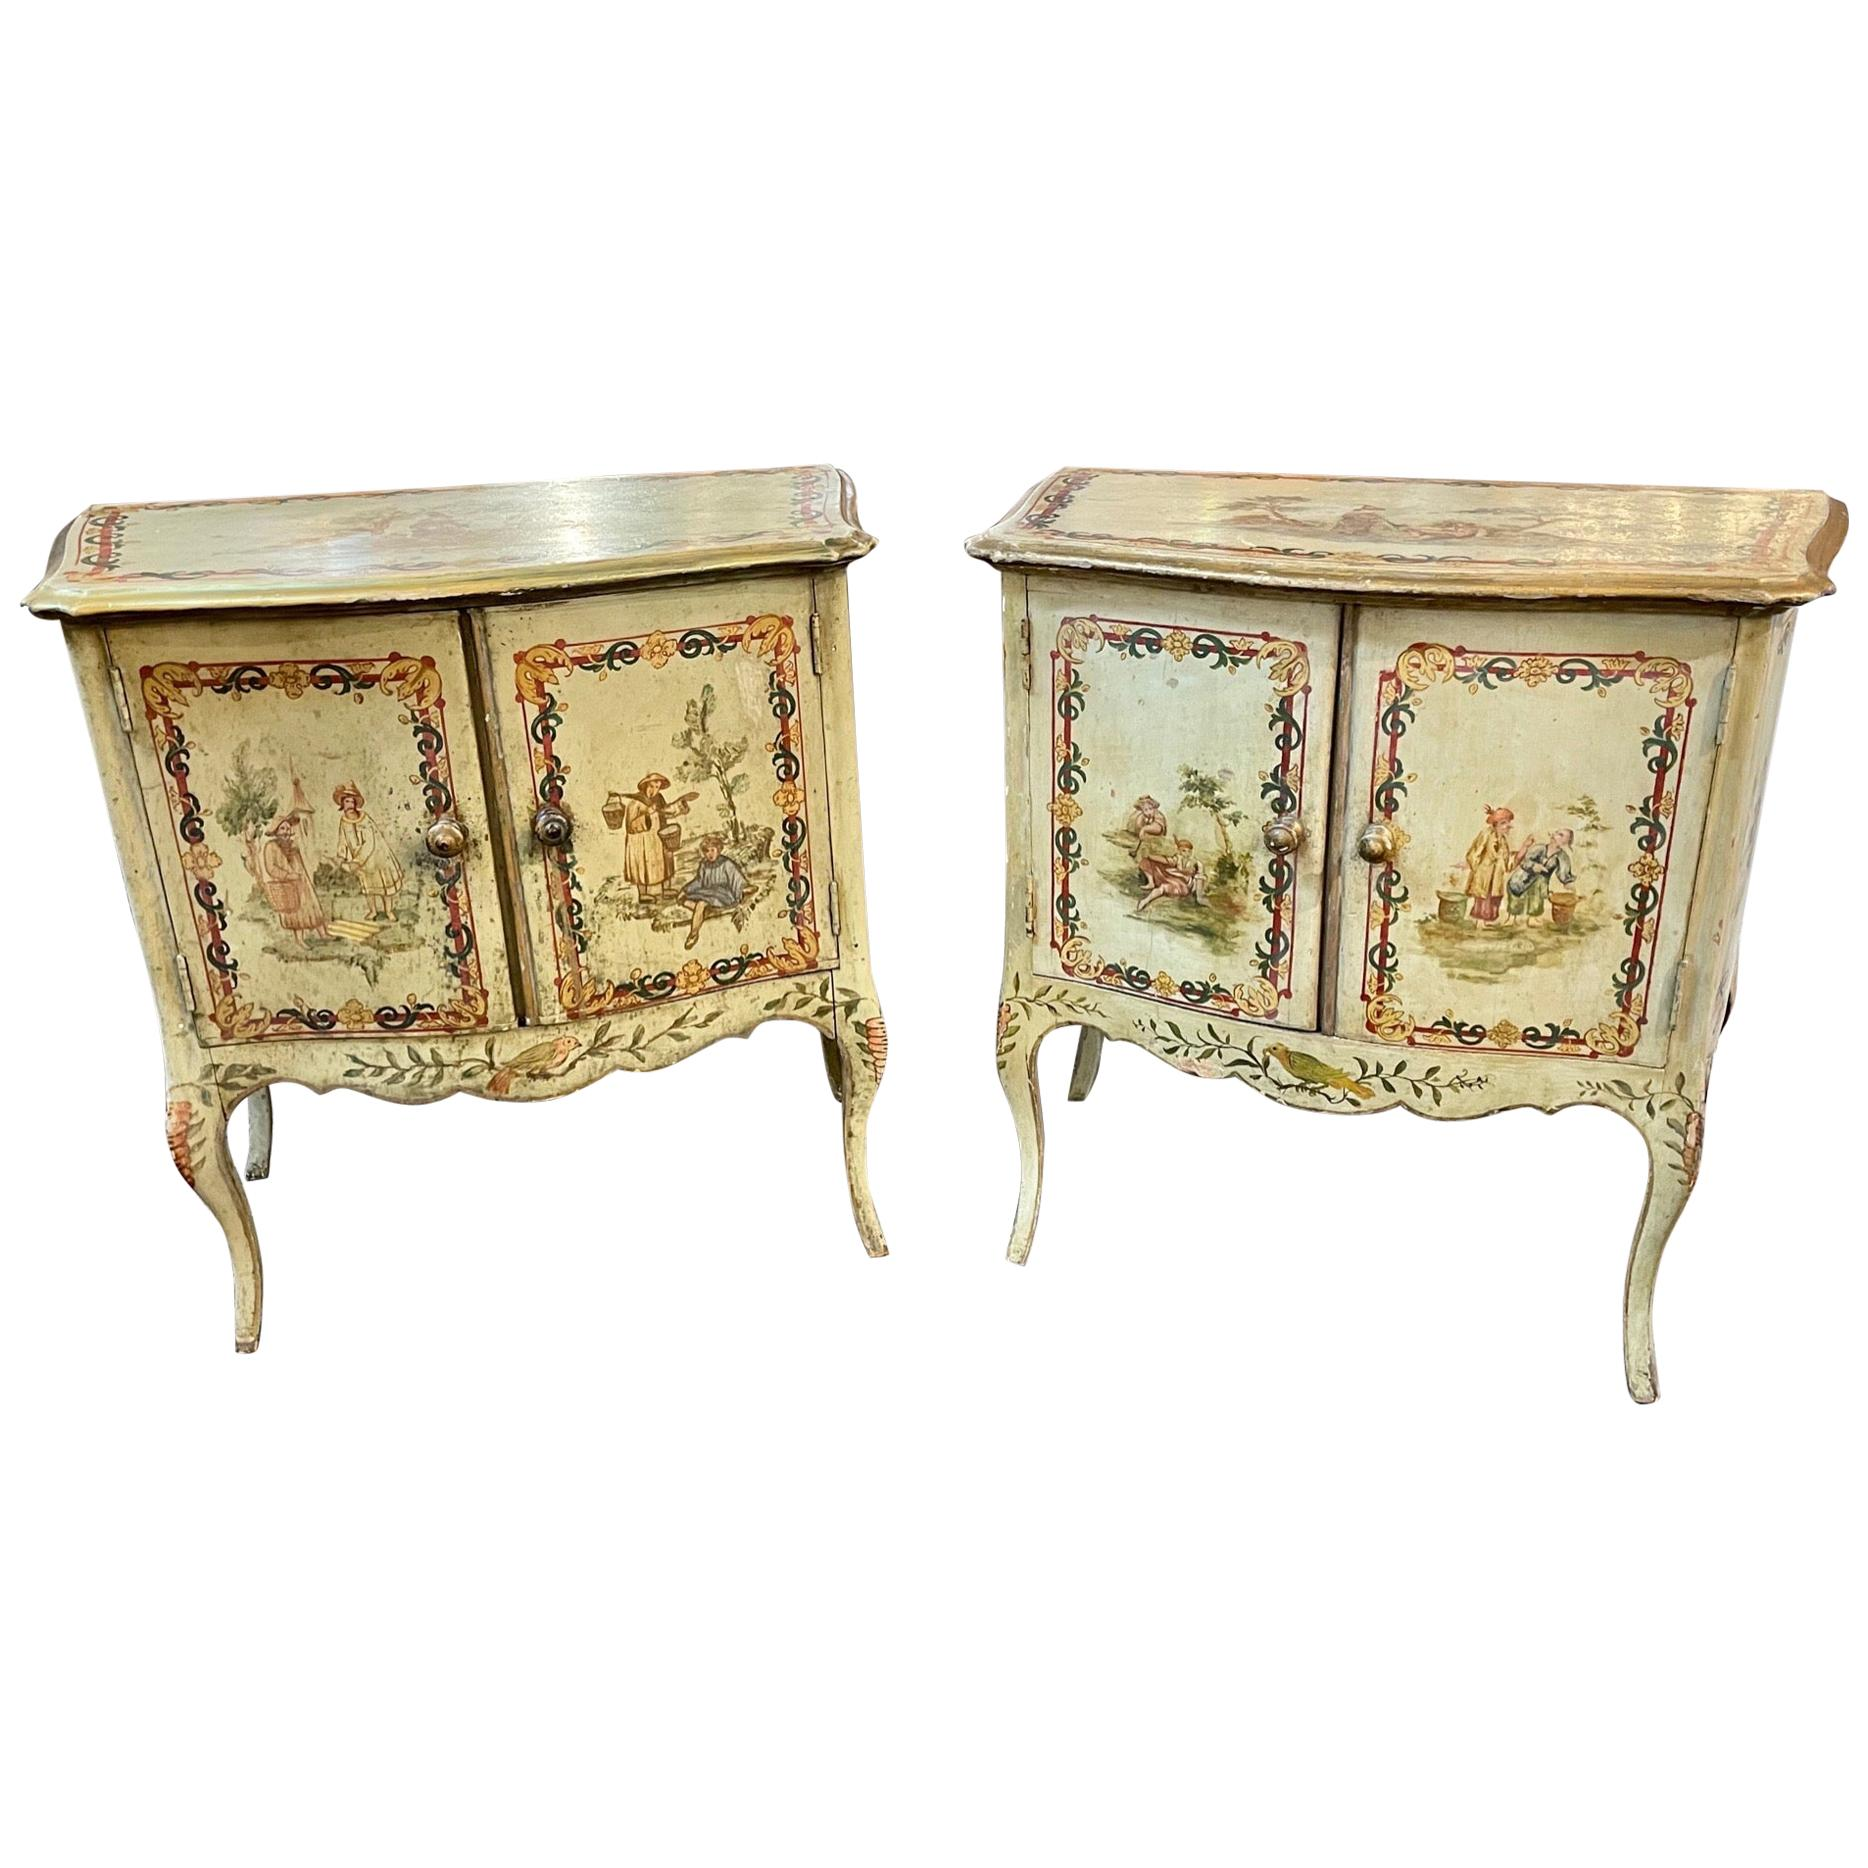 Antique pair of Italian Chinoiserie Decorated Bedside Tables